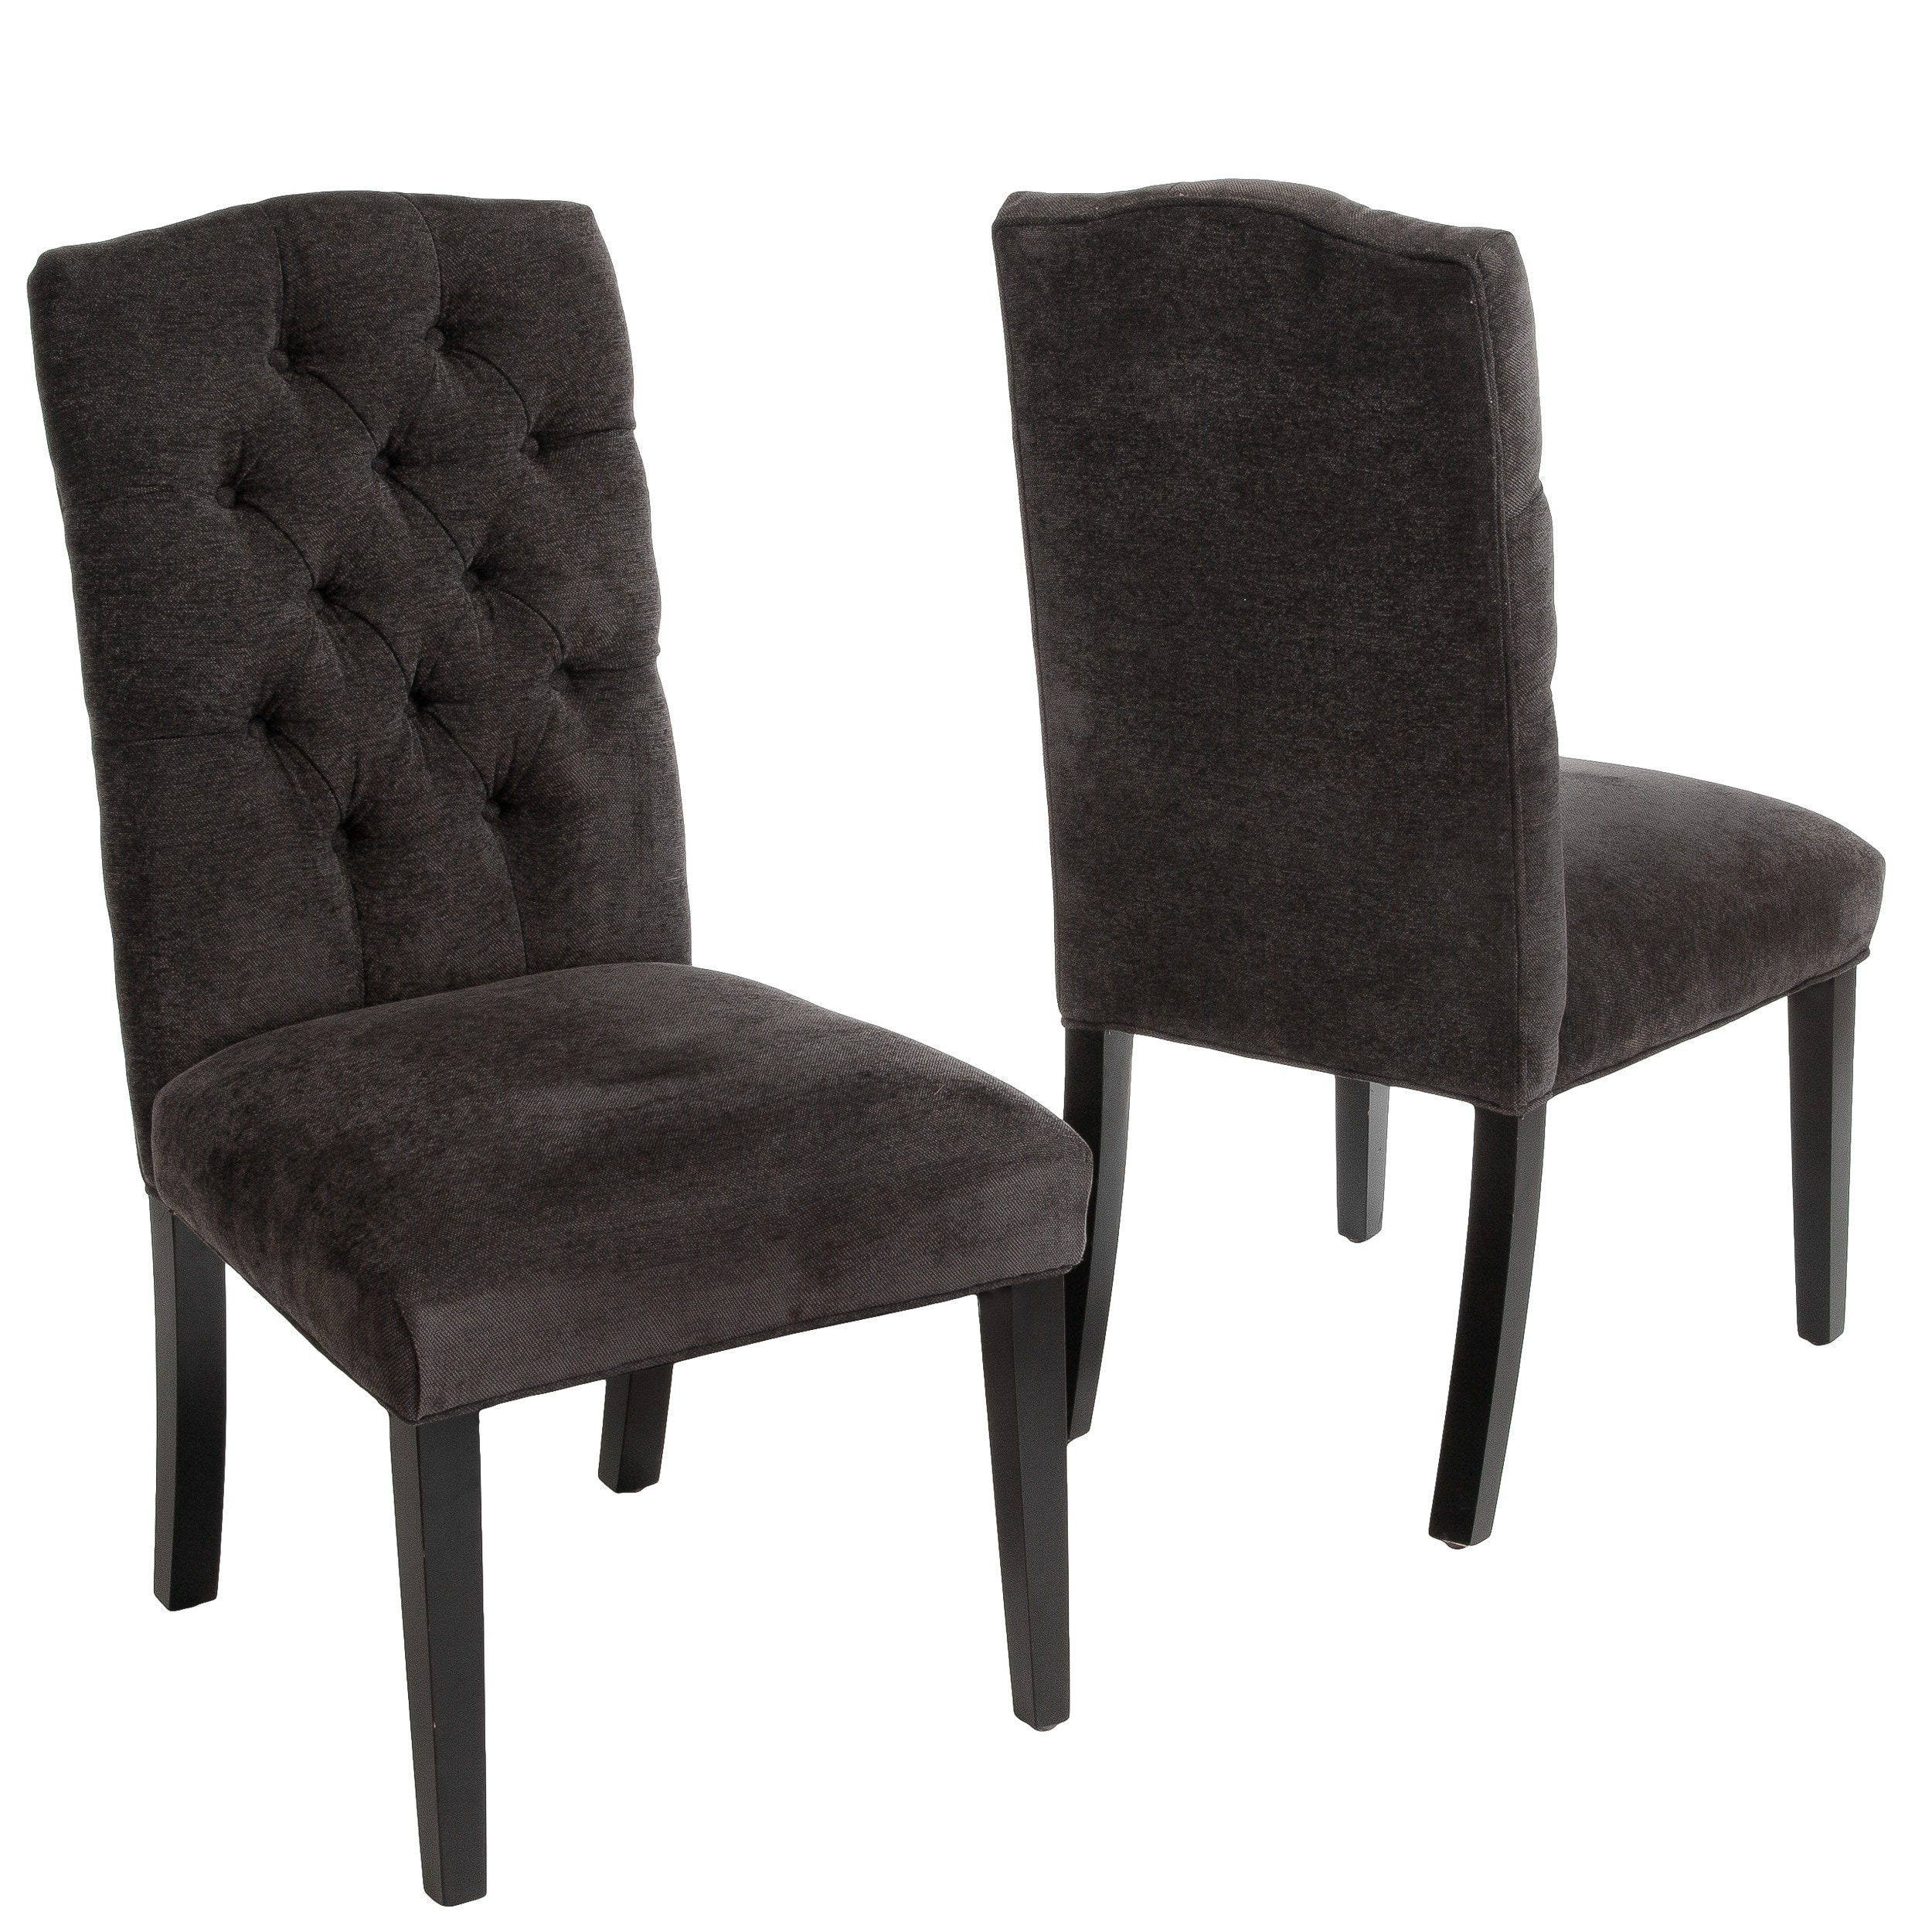 best fabrics for chairs blames high chair cushion buy kitchen and dining room online at overstock